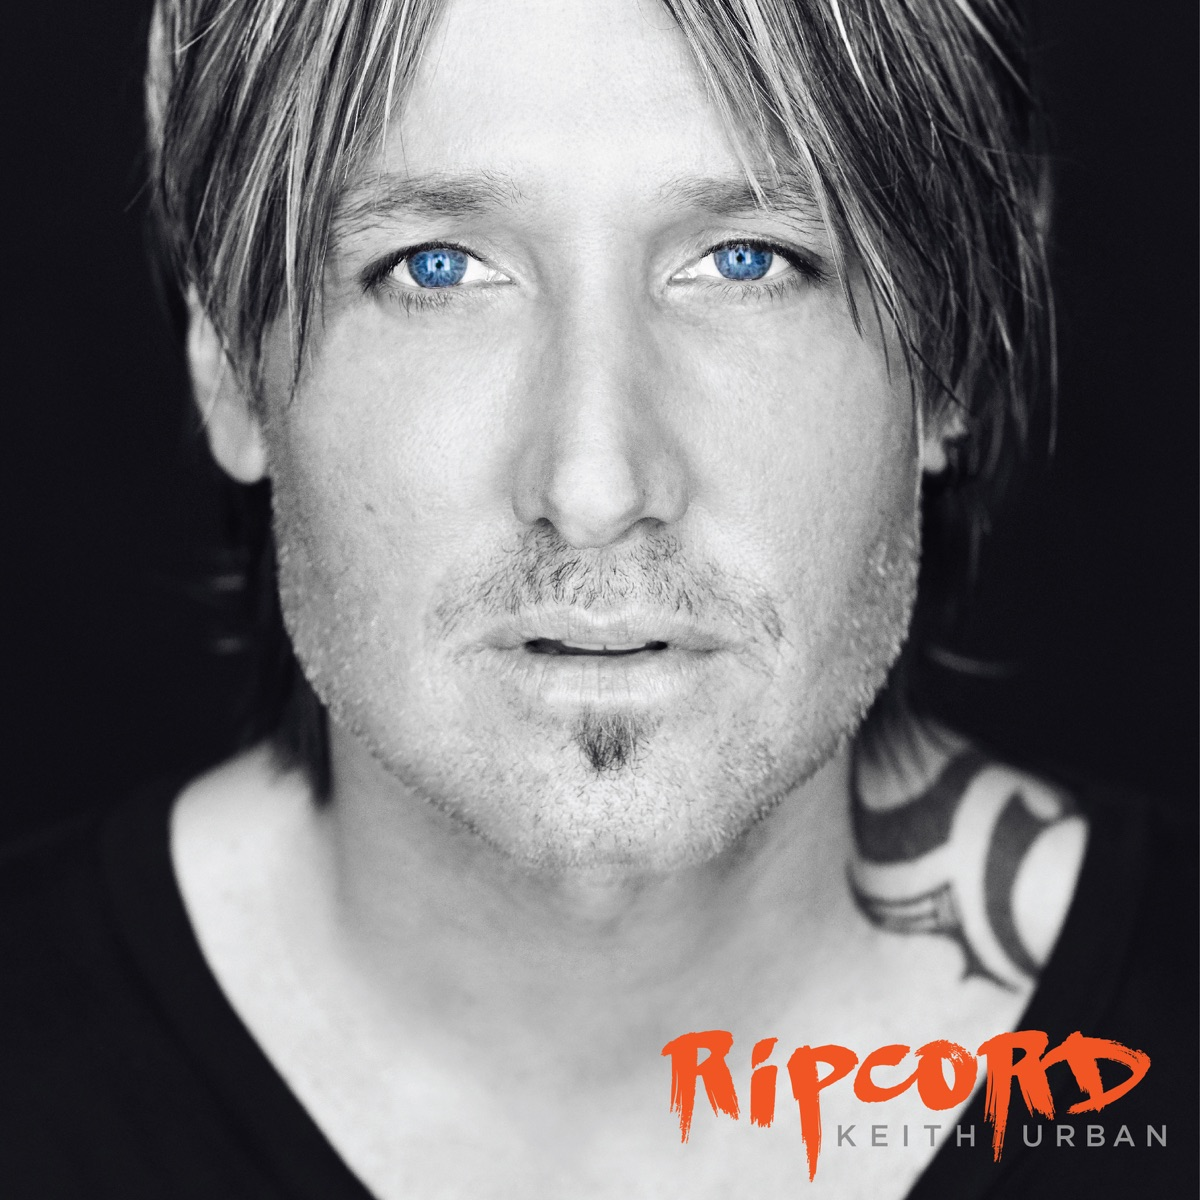 Ripcord Keith Urban CD cover